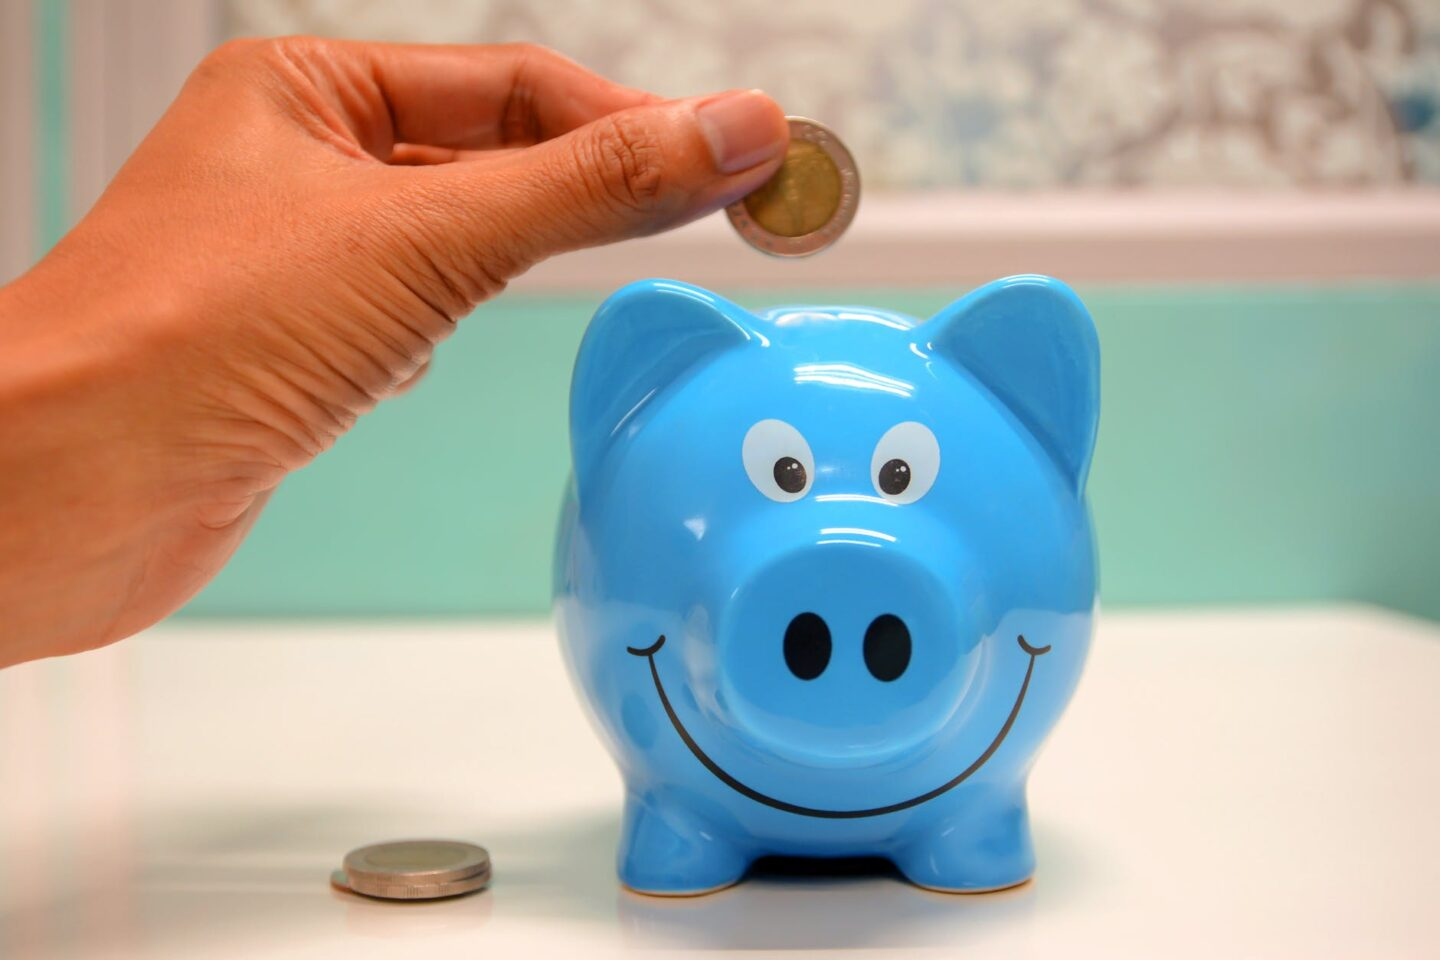 How to save money to make sure you can afford the things you need – money making tips for families